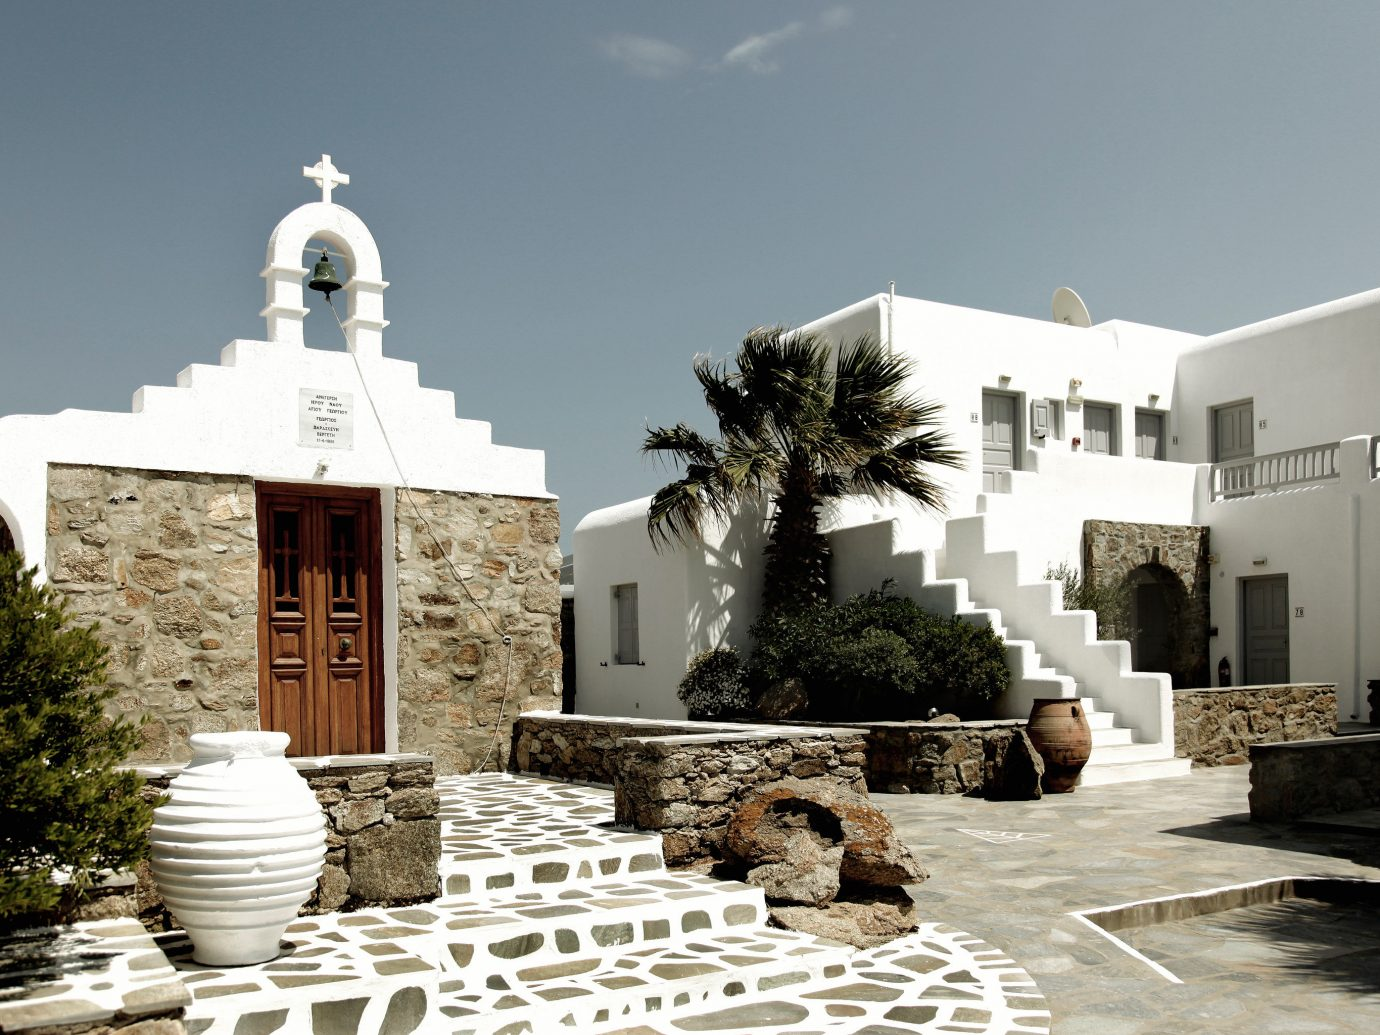 Trip Ideas building outdoor house Architecture home estate ancient history Villa place of worship stone